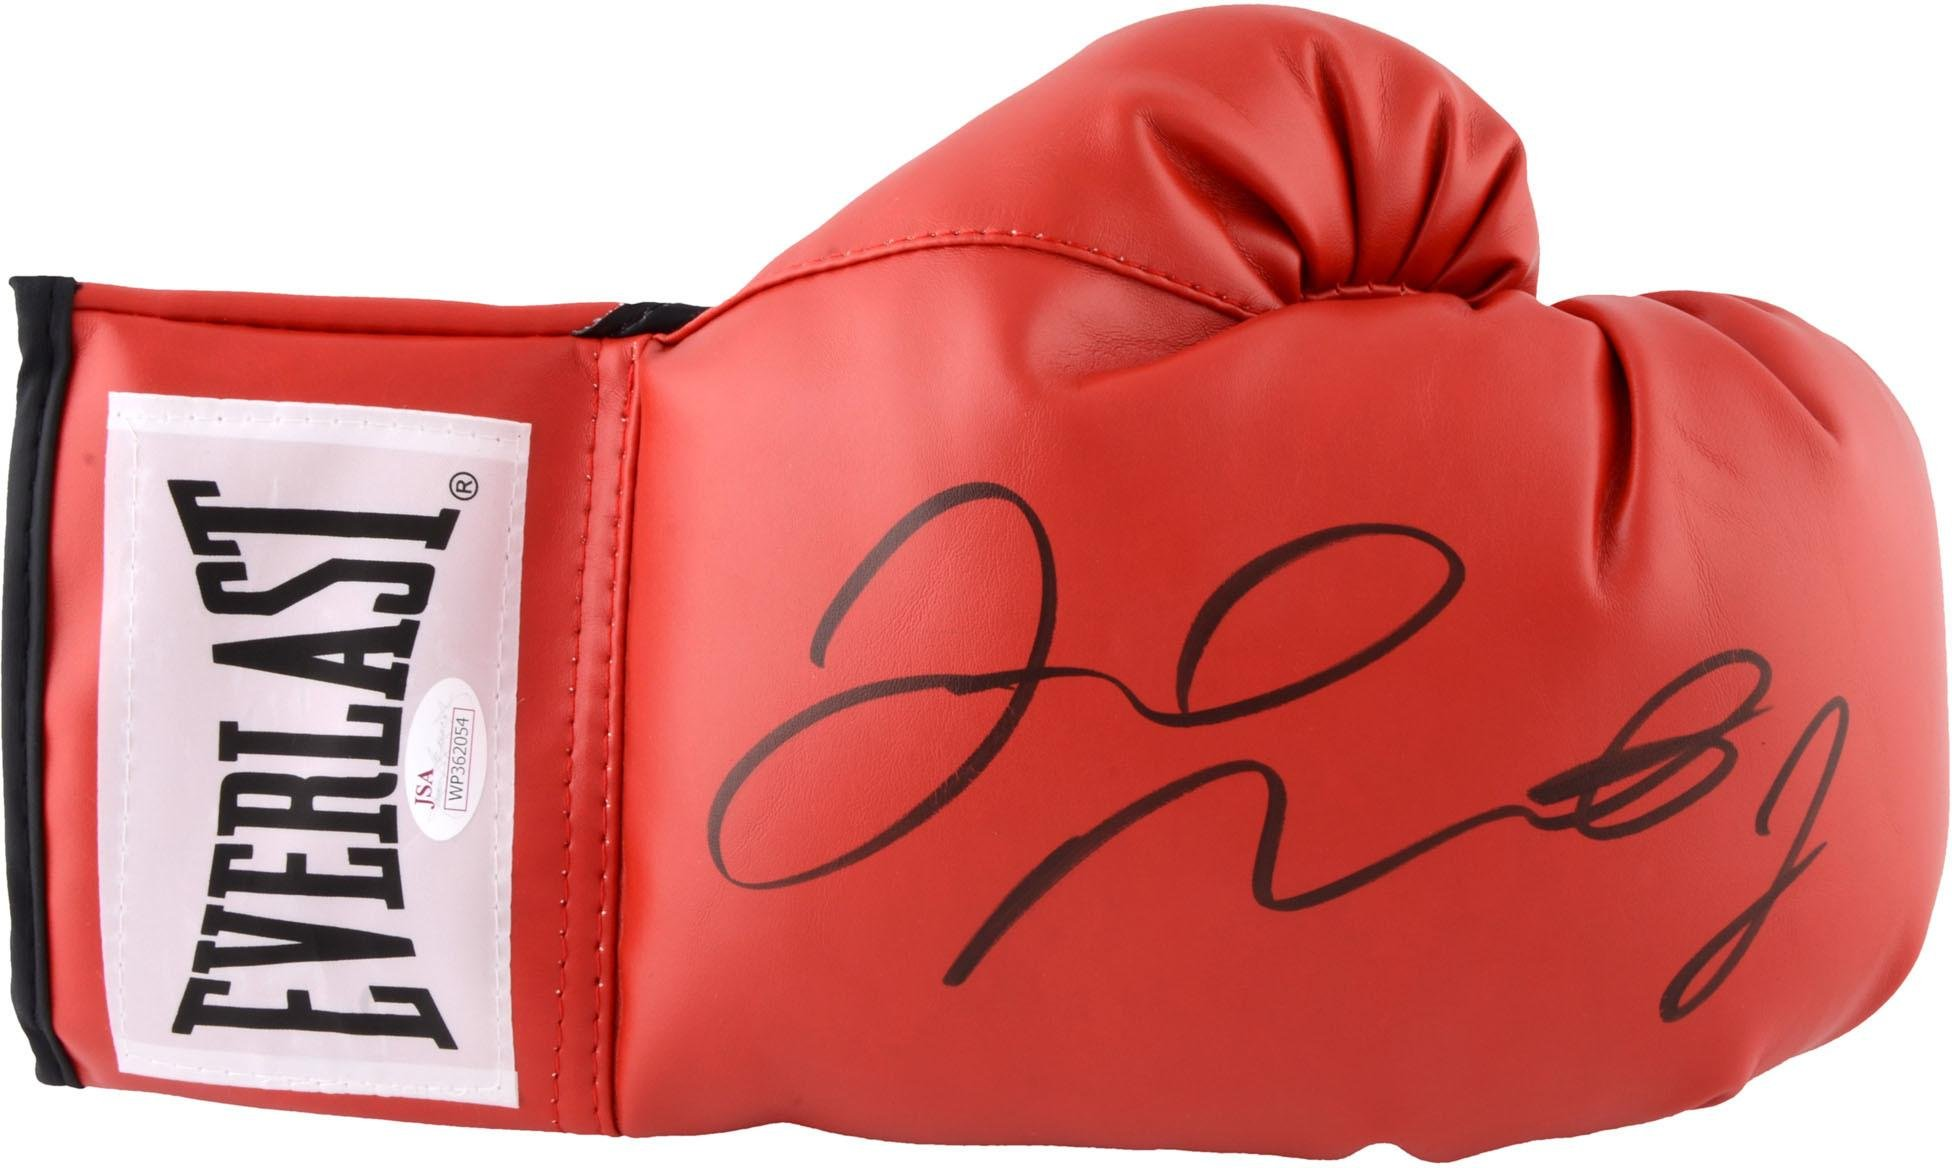 Floyd Mayweather Autographed Red Everlast Boxing Glove Fanatics Authentic Certified Autographed Boxing Gloves